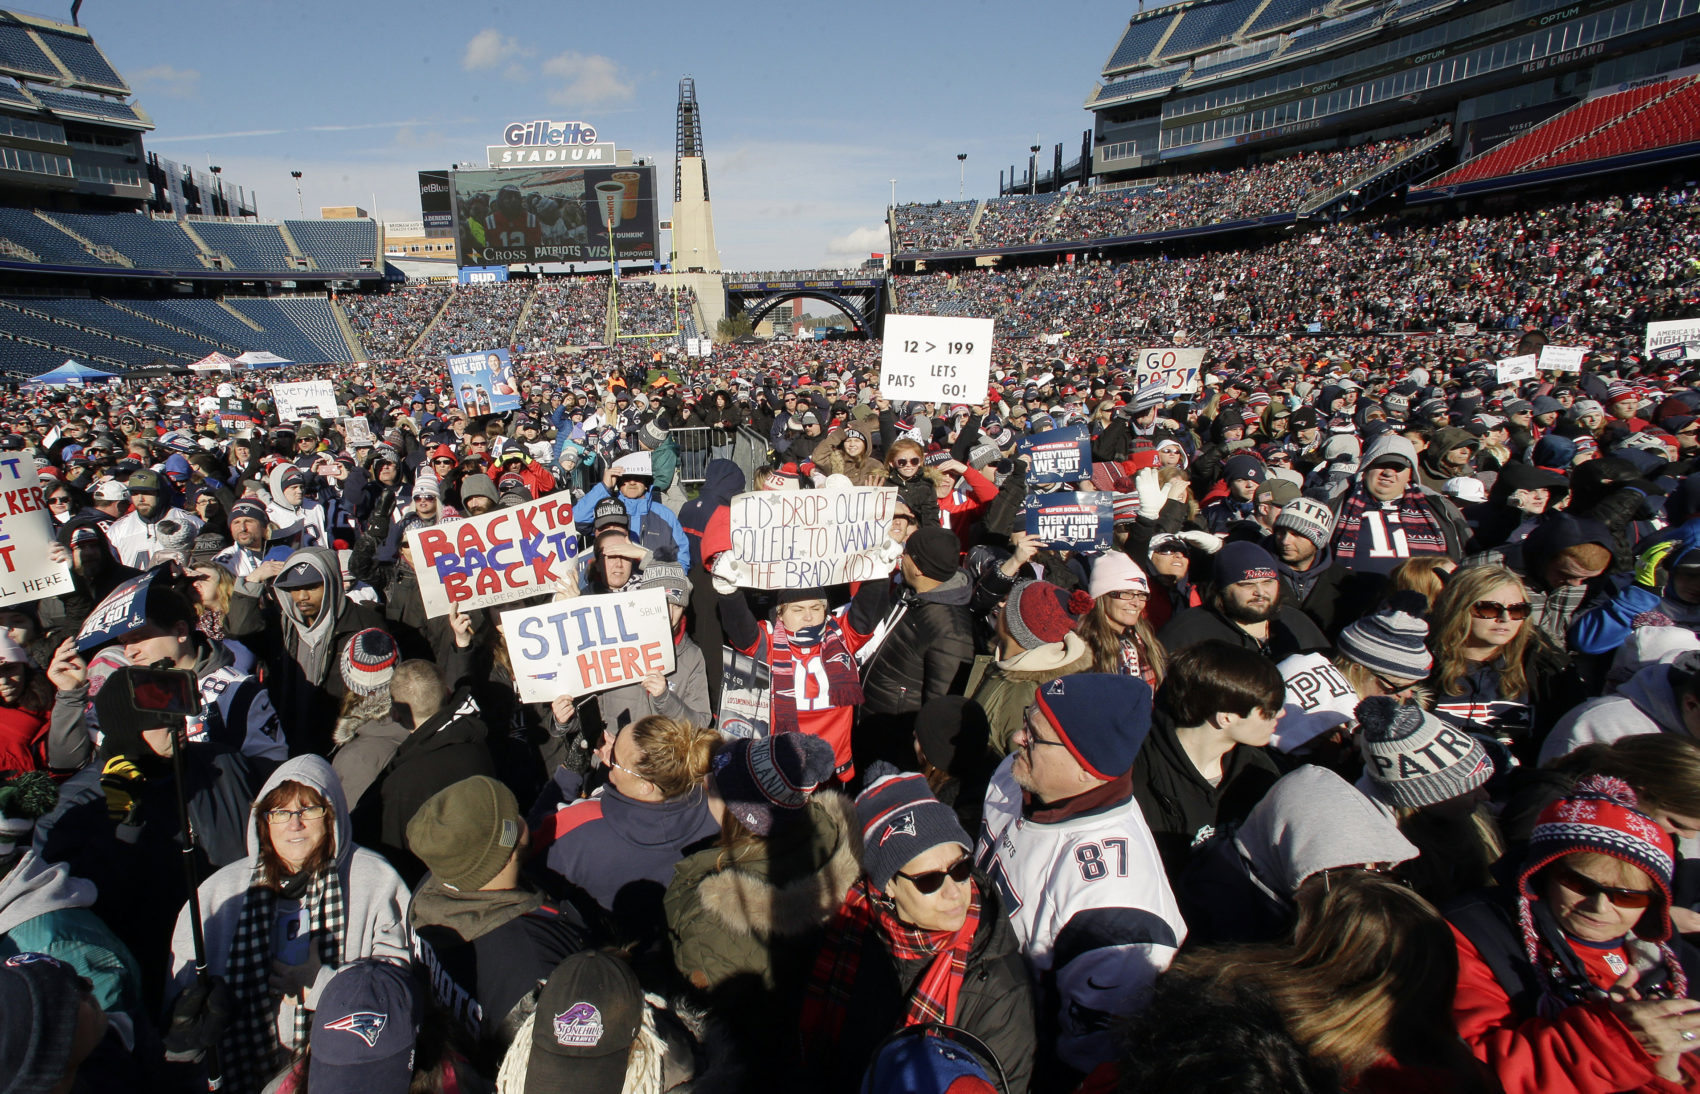 New England Patriots fans hold placards and cheer during an NFL football Super Bowl send-off rally for the team, Sunday, Jan. 27, 2019, in Foxborough, Mass. The Los Angeles Rams are to play the Patriots in Super Bowl on Feb. 3, in Atlanta, Ga. (Steven Senne/AP)